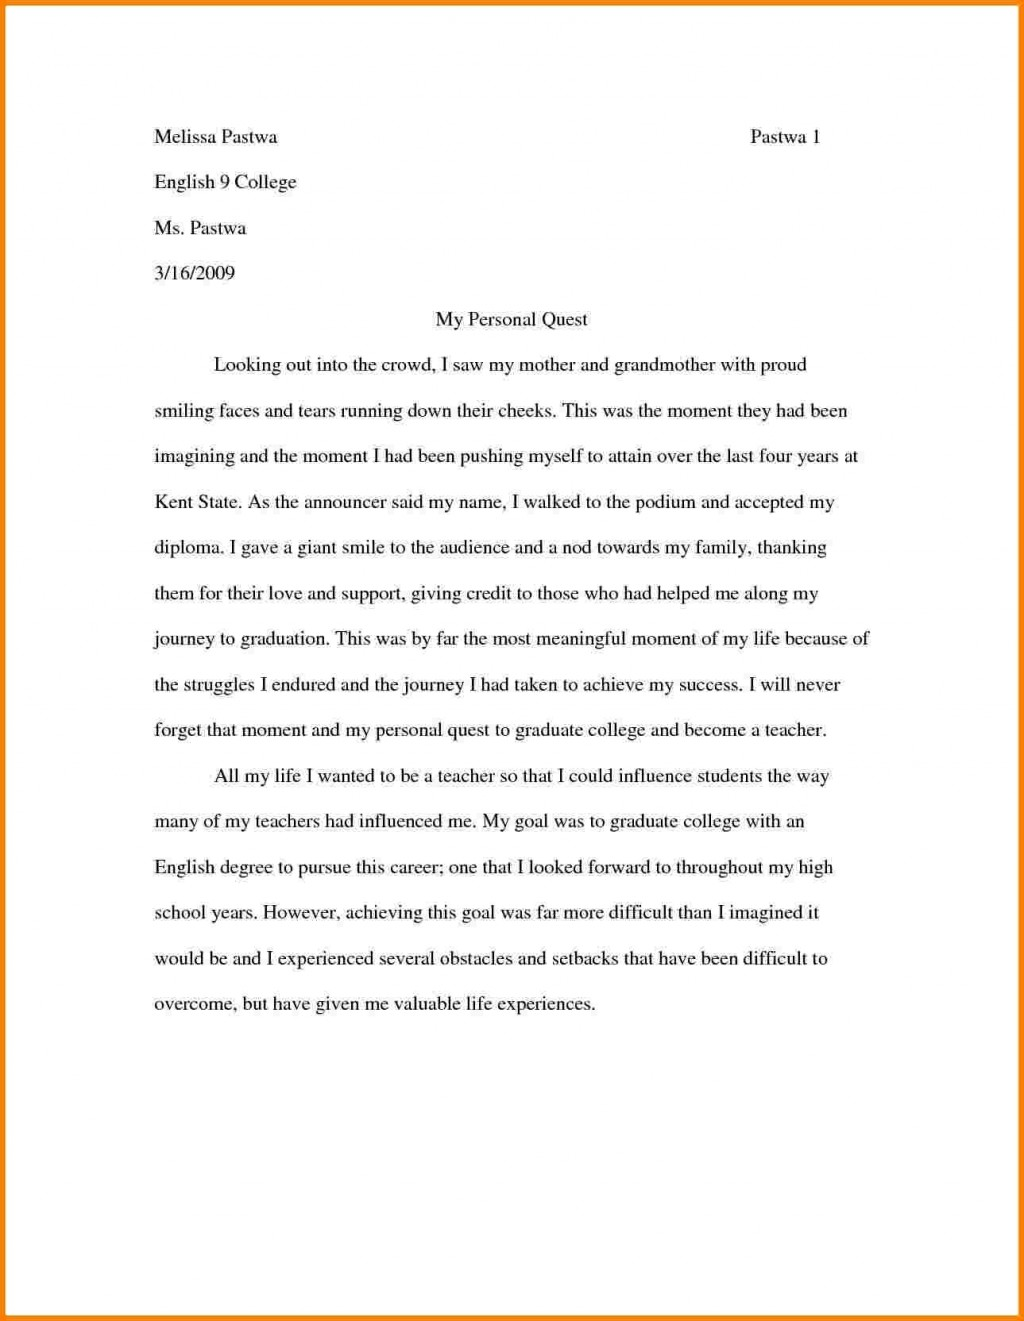 002 College Essays Essay Examples Writings And Application Example Of Philosophy Statement Case Best Frightening 2017 Prompts Boston Scholarship Large